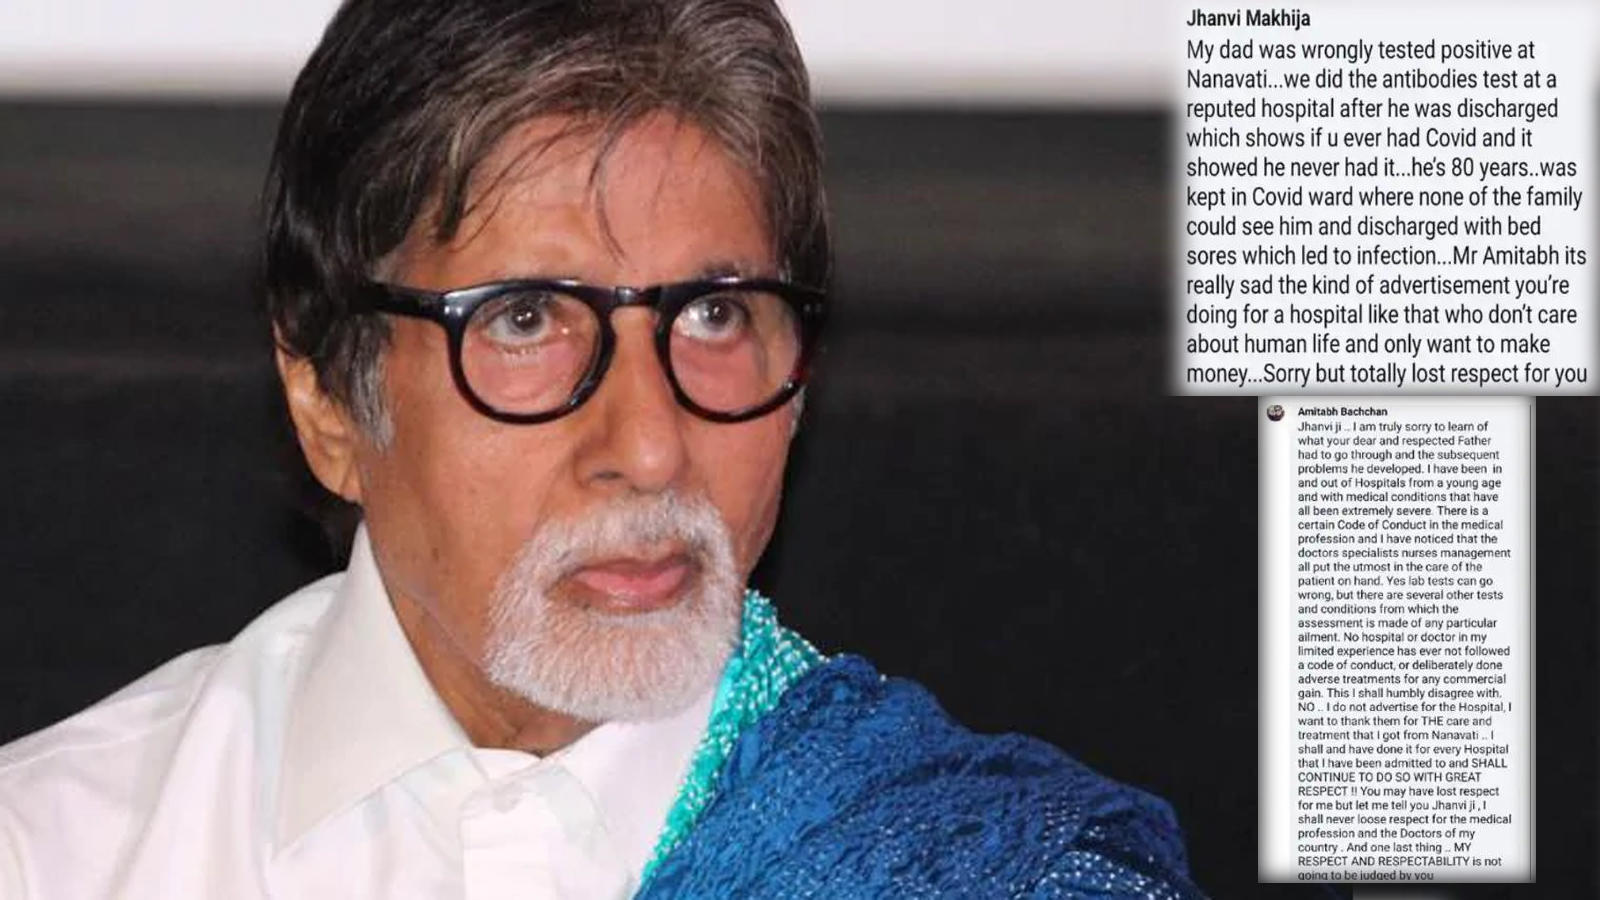 netizen-trolls-amitabh-bachchan-big-b-hits-back-says-my-respectability-is-not-going-to-be-judged-by-you